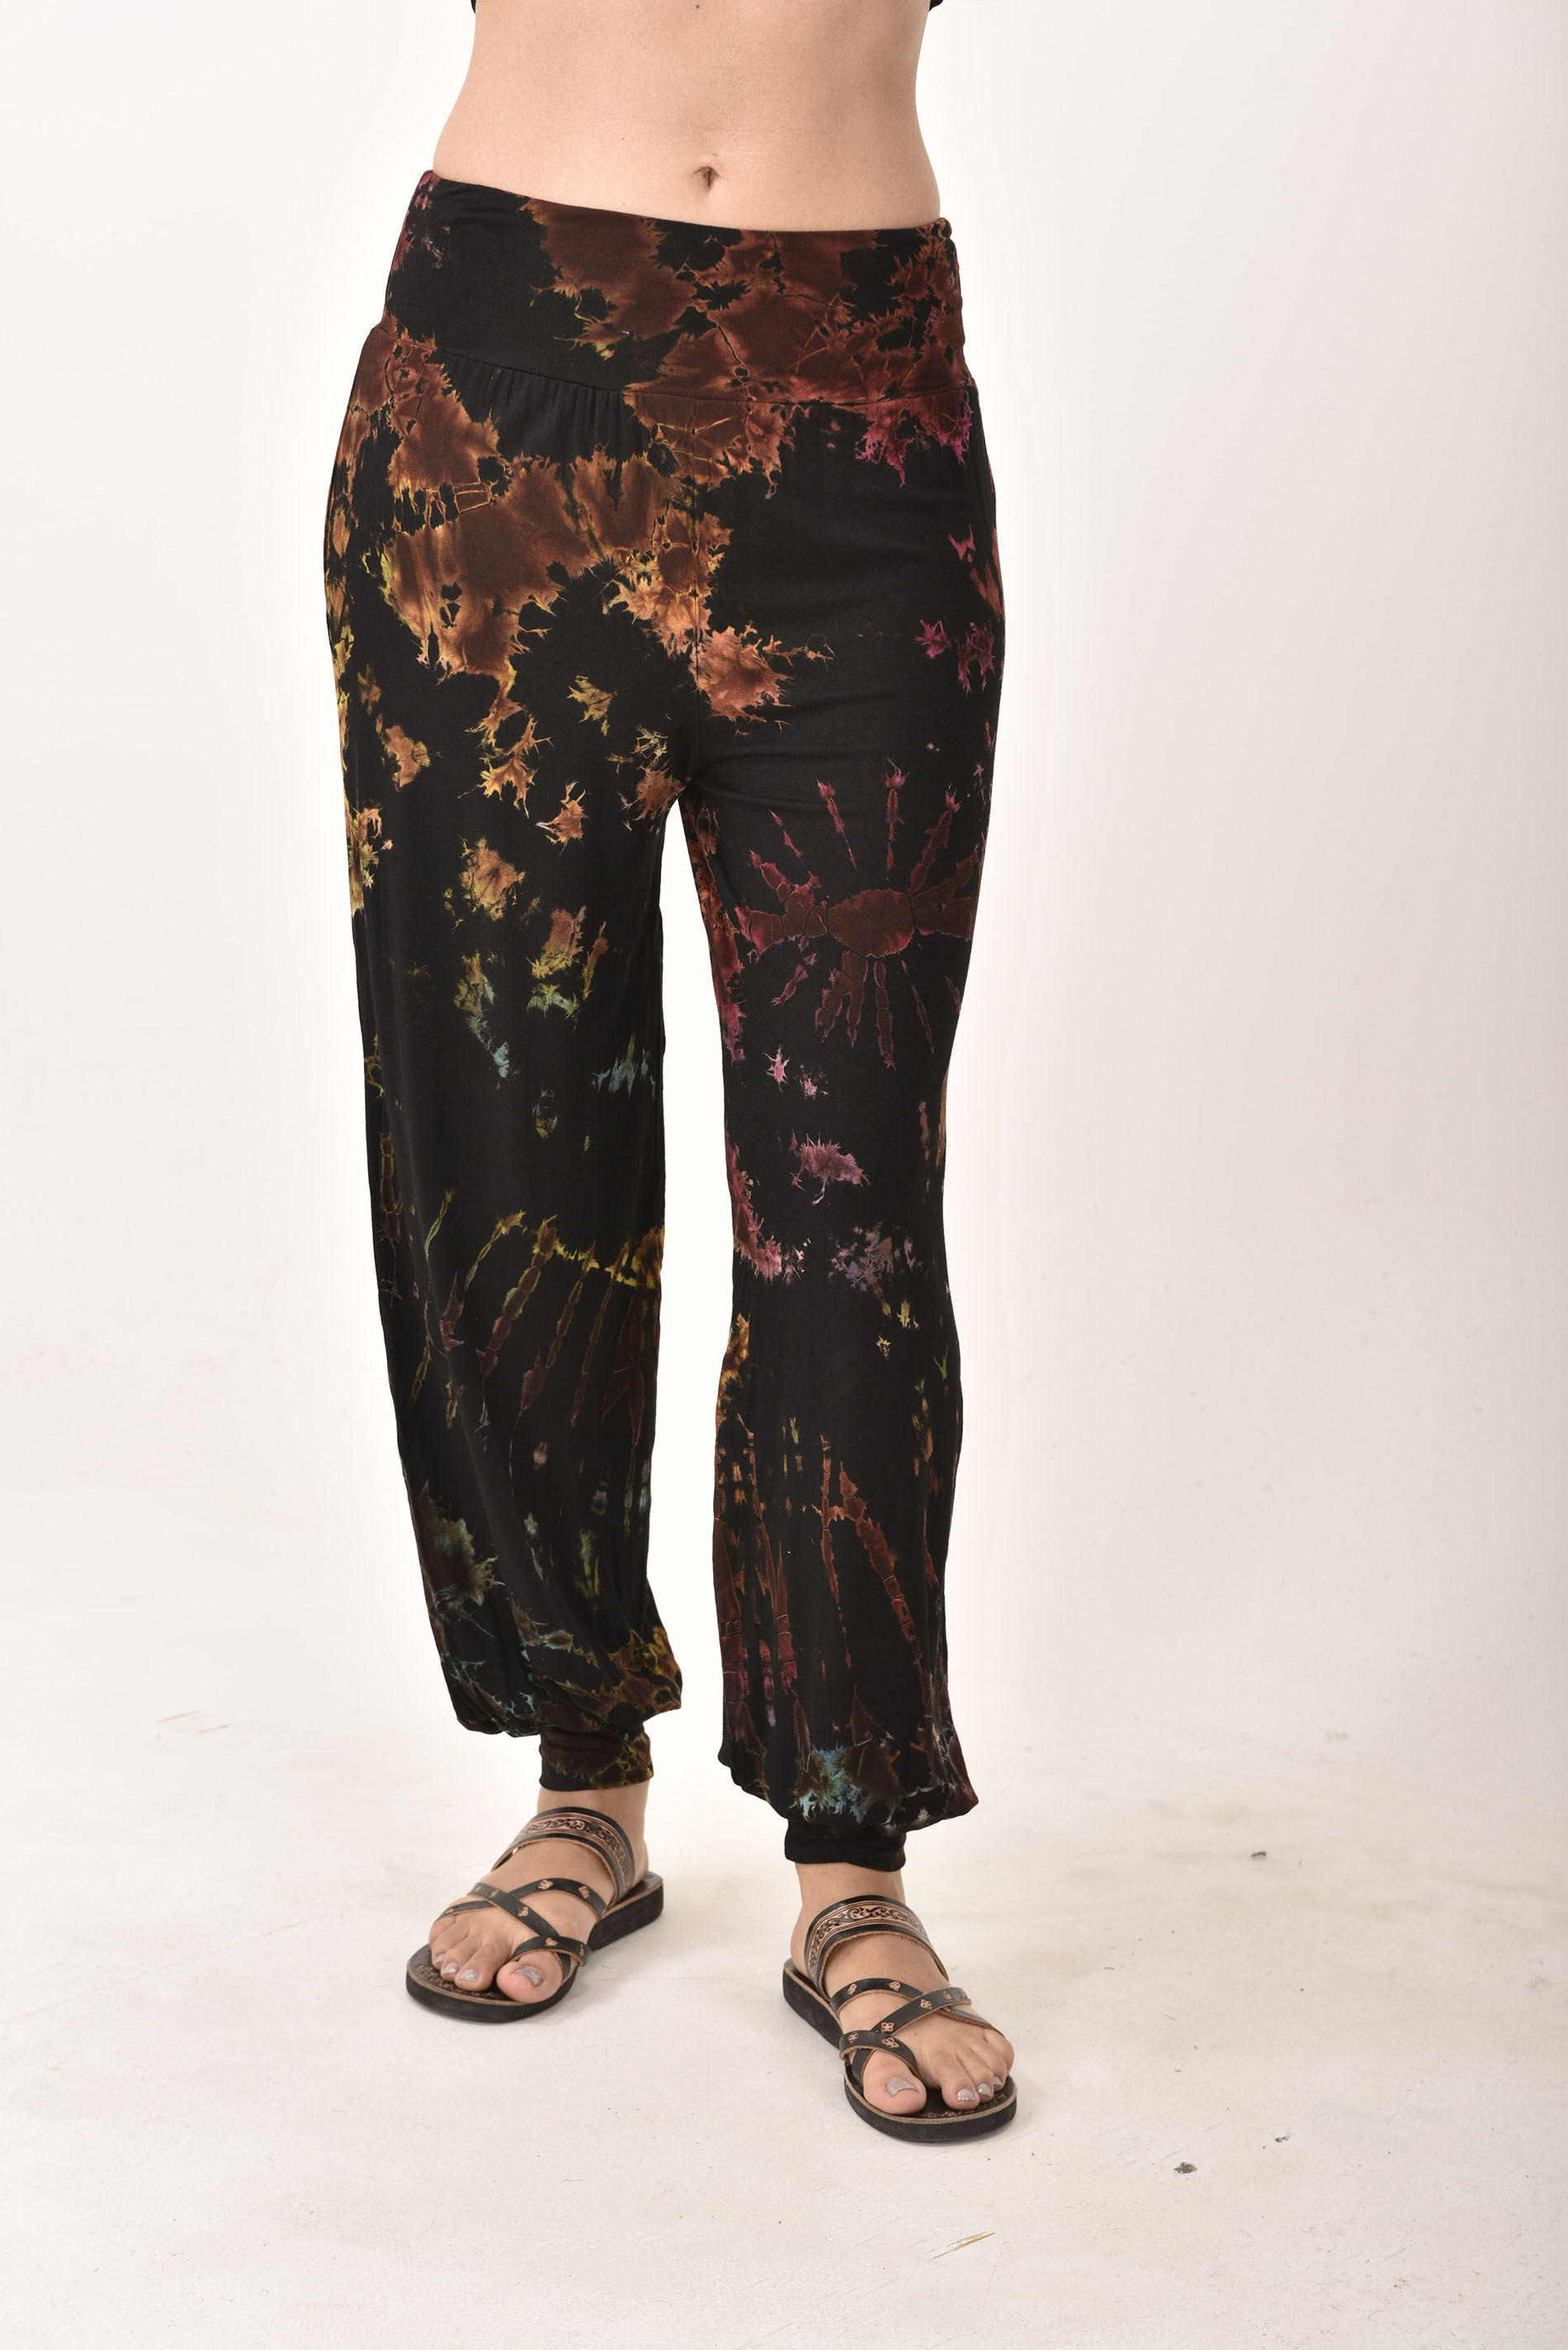 Hand Painted Tie Dye deluxe Harem Pants on higher quality Rayon/Spandex Blend, Black